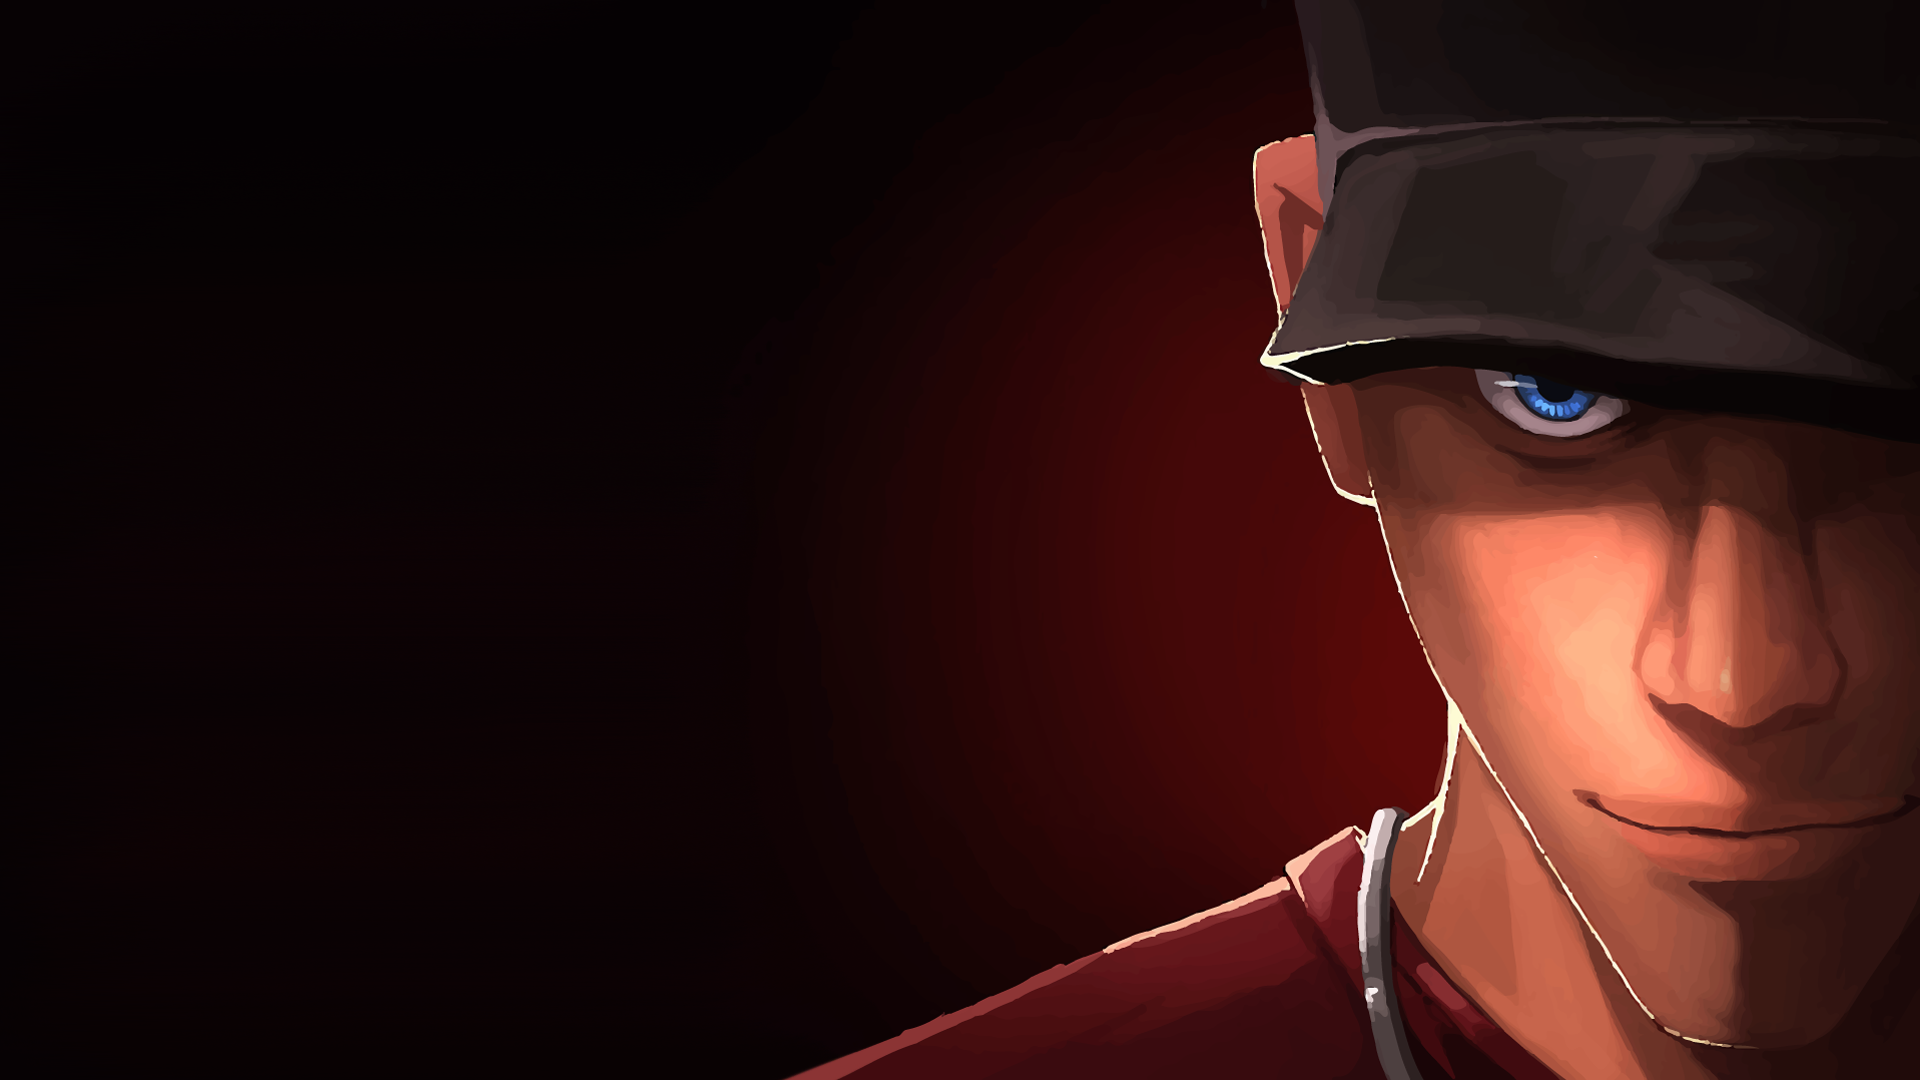 Tf2 Scout Wallpapers Wallpaper Cave Team Fortress 2 Team